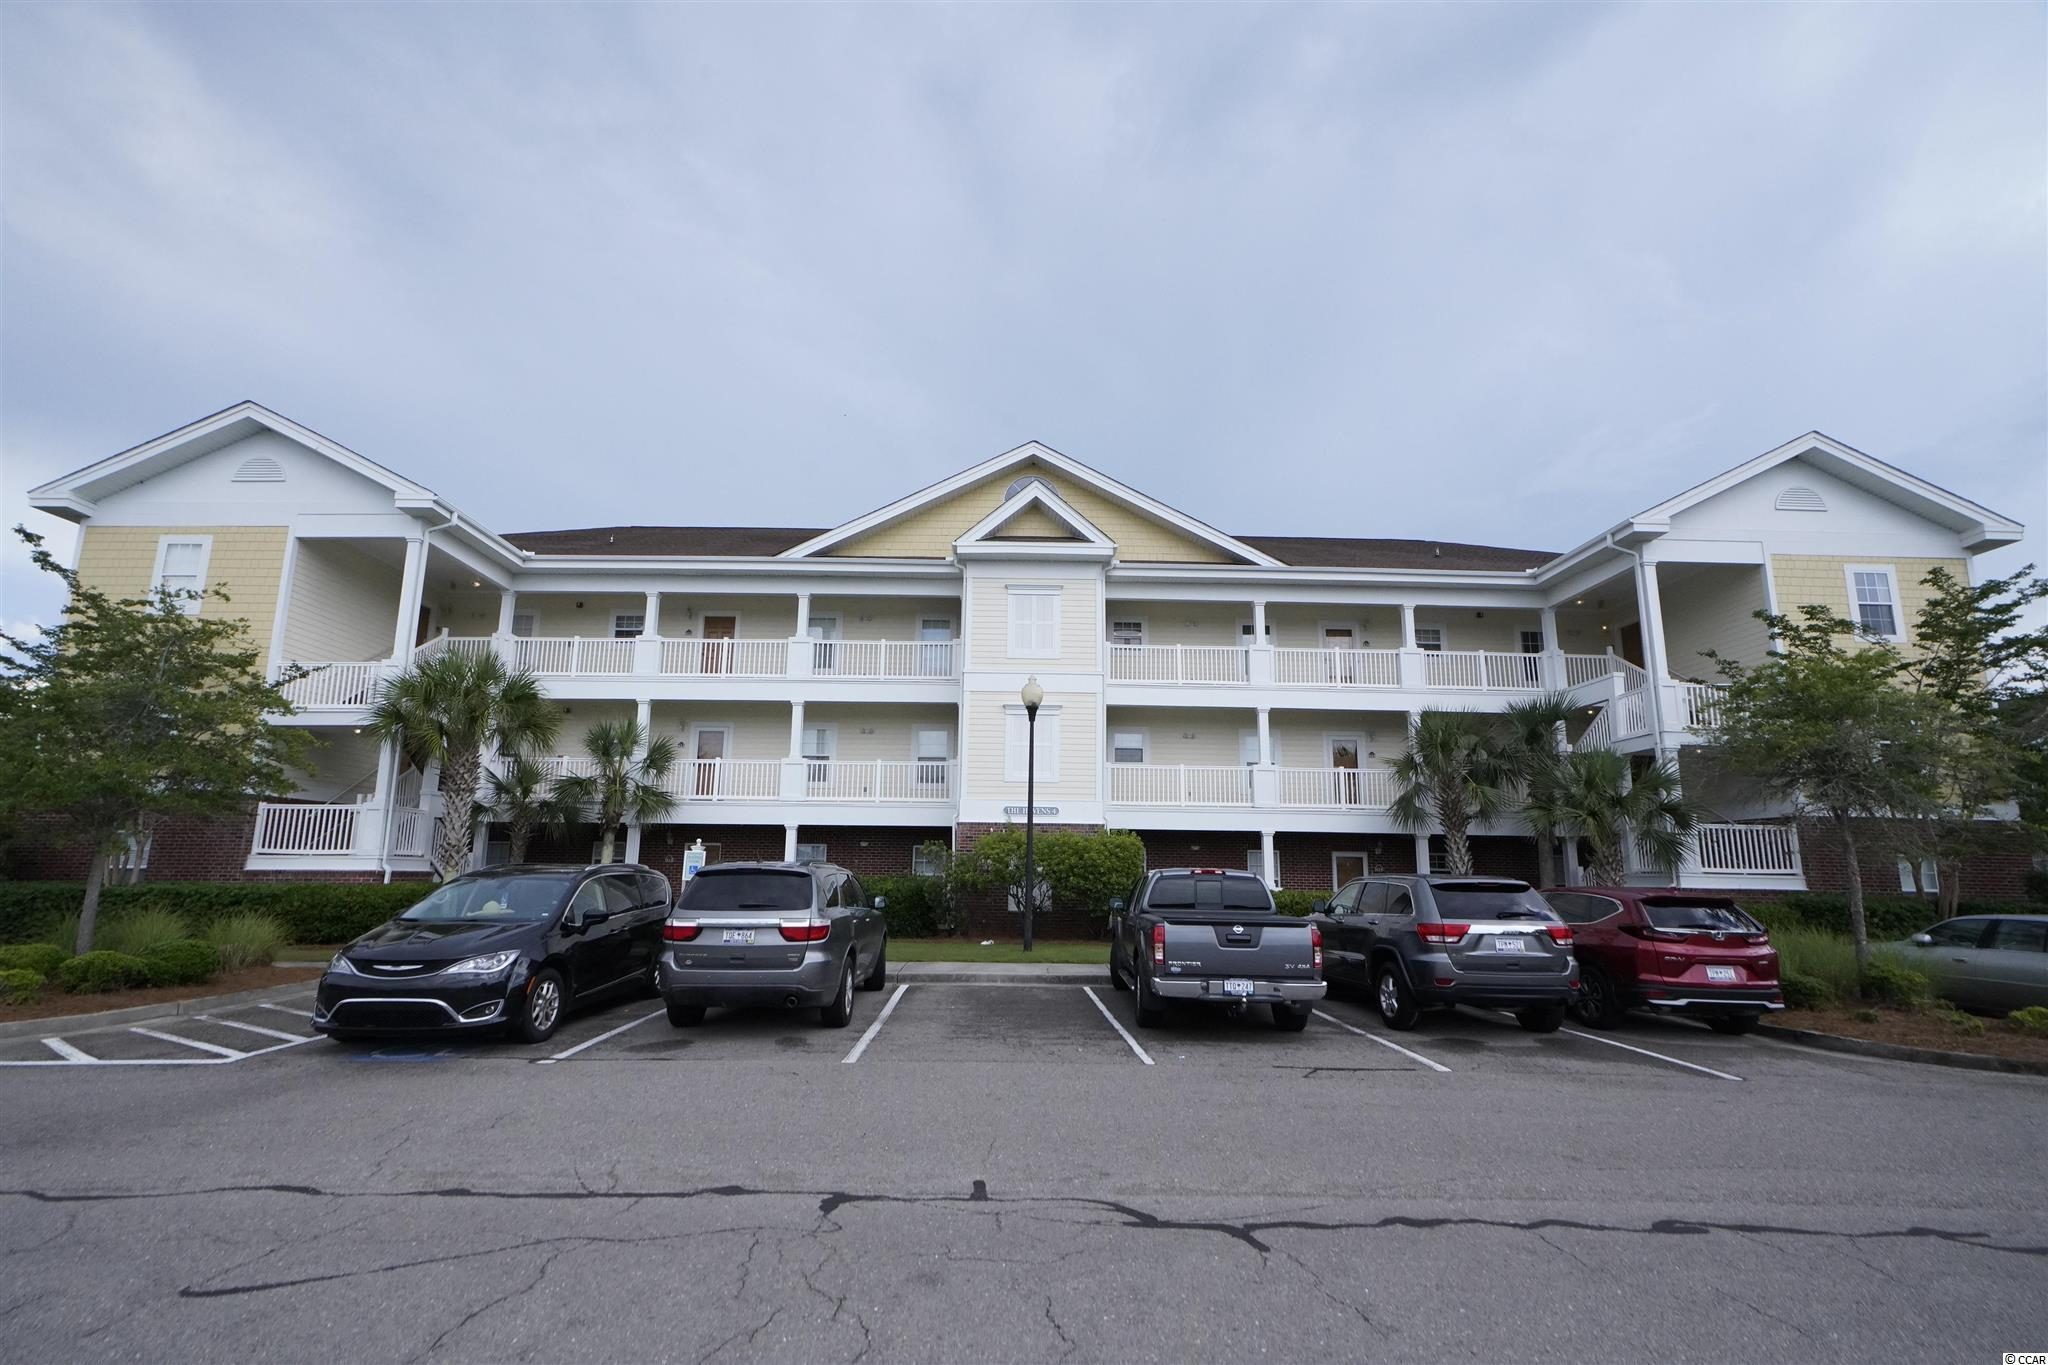 This is a 3 bedroom 2 bath top floor end unit so no noise above you and it also over looks the community swimming pool. The unit has Vaulted ceilings in Living area and Tray ceiling in the master suite. Completely furnished and ready to move in. Great second home or rental property. Enjoy Barefoot living at its best 4 championship golf courses, world class dining and entertainment. Soon you will have access to the new Beach Cabana currently under construction on the oceanfront,Barefoot even has an Urgent Care in the community. You can enjoy the community pool at the Havens right behind you as well as access to Barefoot's 15,000 gallon pool overlooking the ICW right beside the Marina Bar & Grill. It's only a short drive to popular area attractions such as Alligator Adventure, Alabama Theater, House of Blues, Duplin Winery, the Tanger Outlets, and just a short golf cart ride to the ocean, all the dining/nightlife at your fingertips!